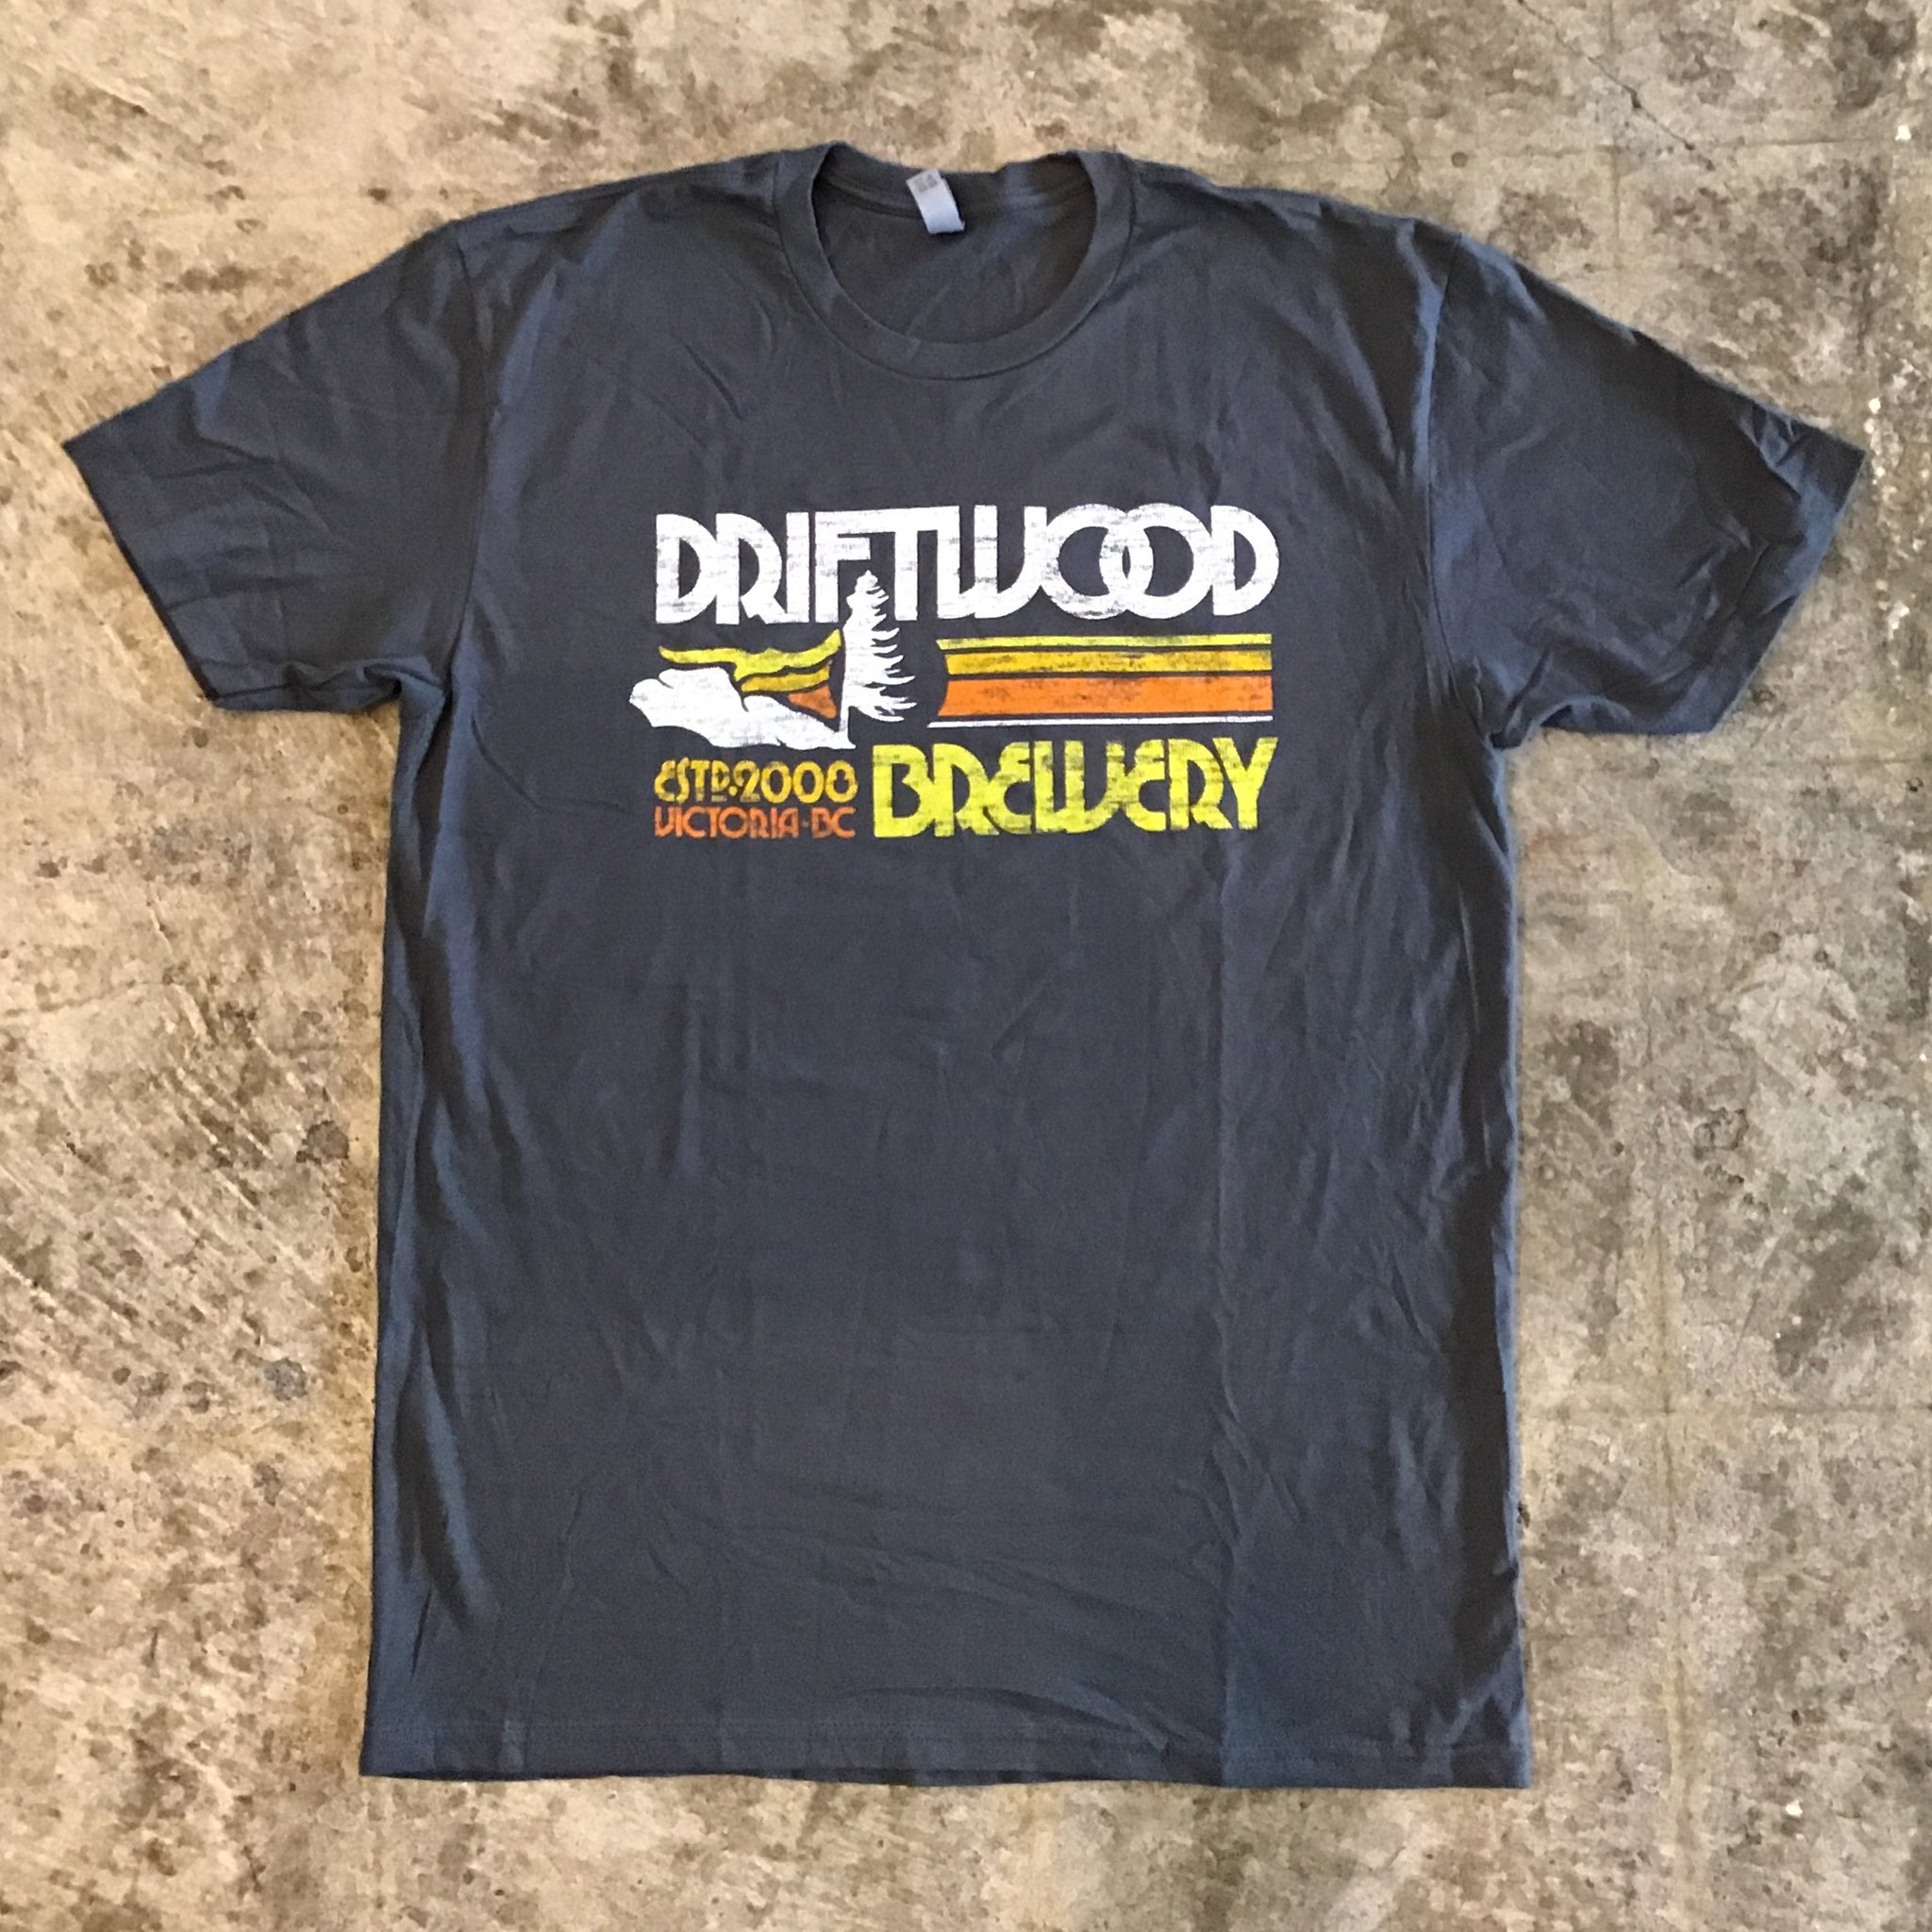 Driftwood-T-Shirt Gray